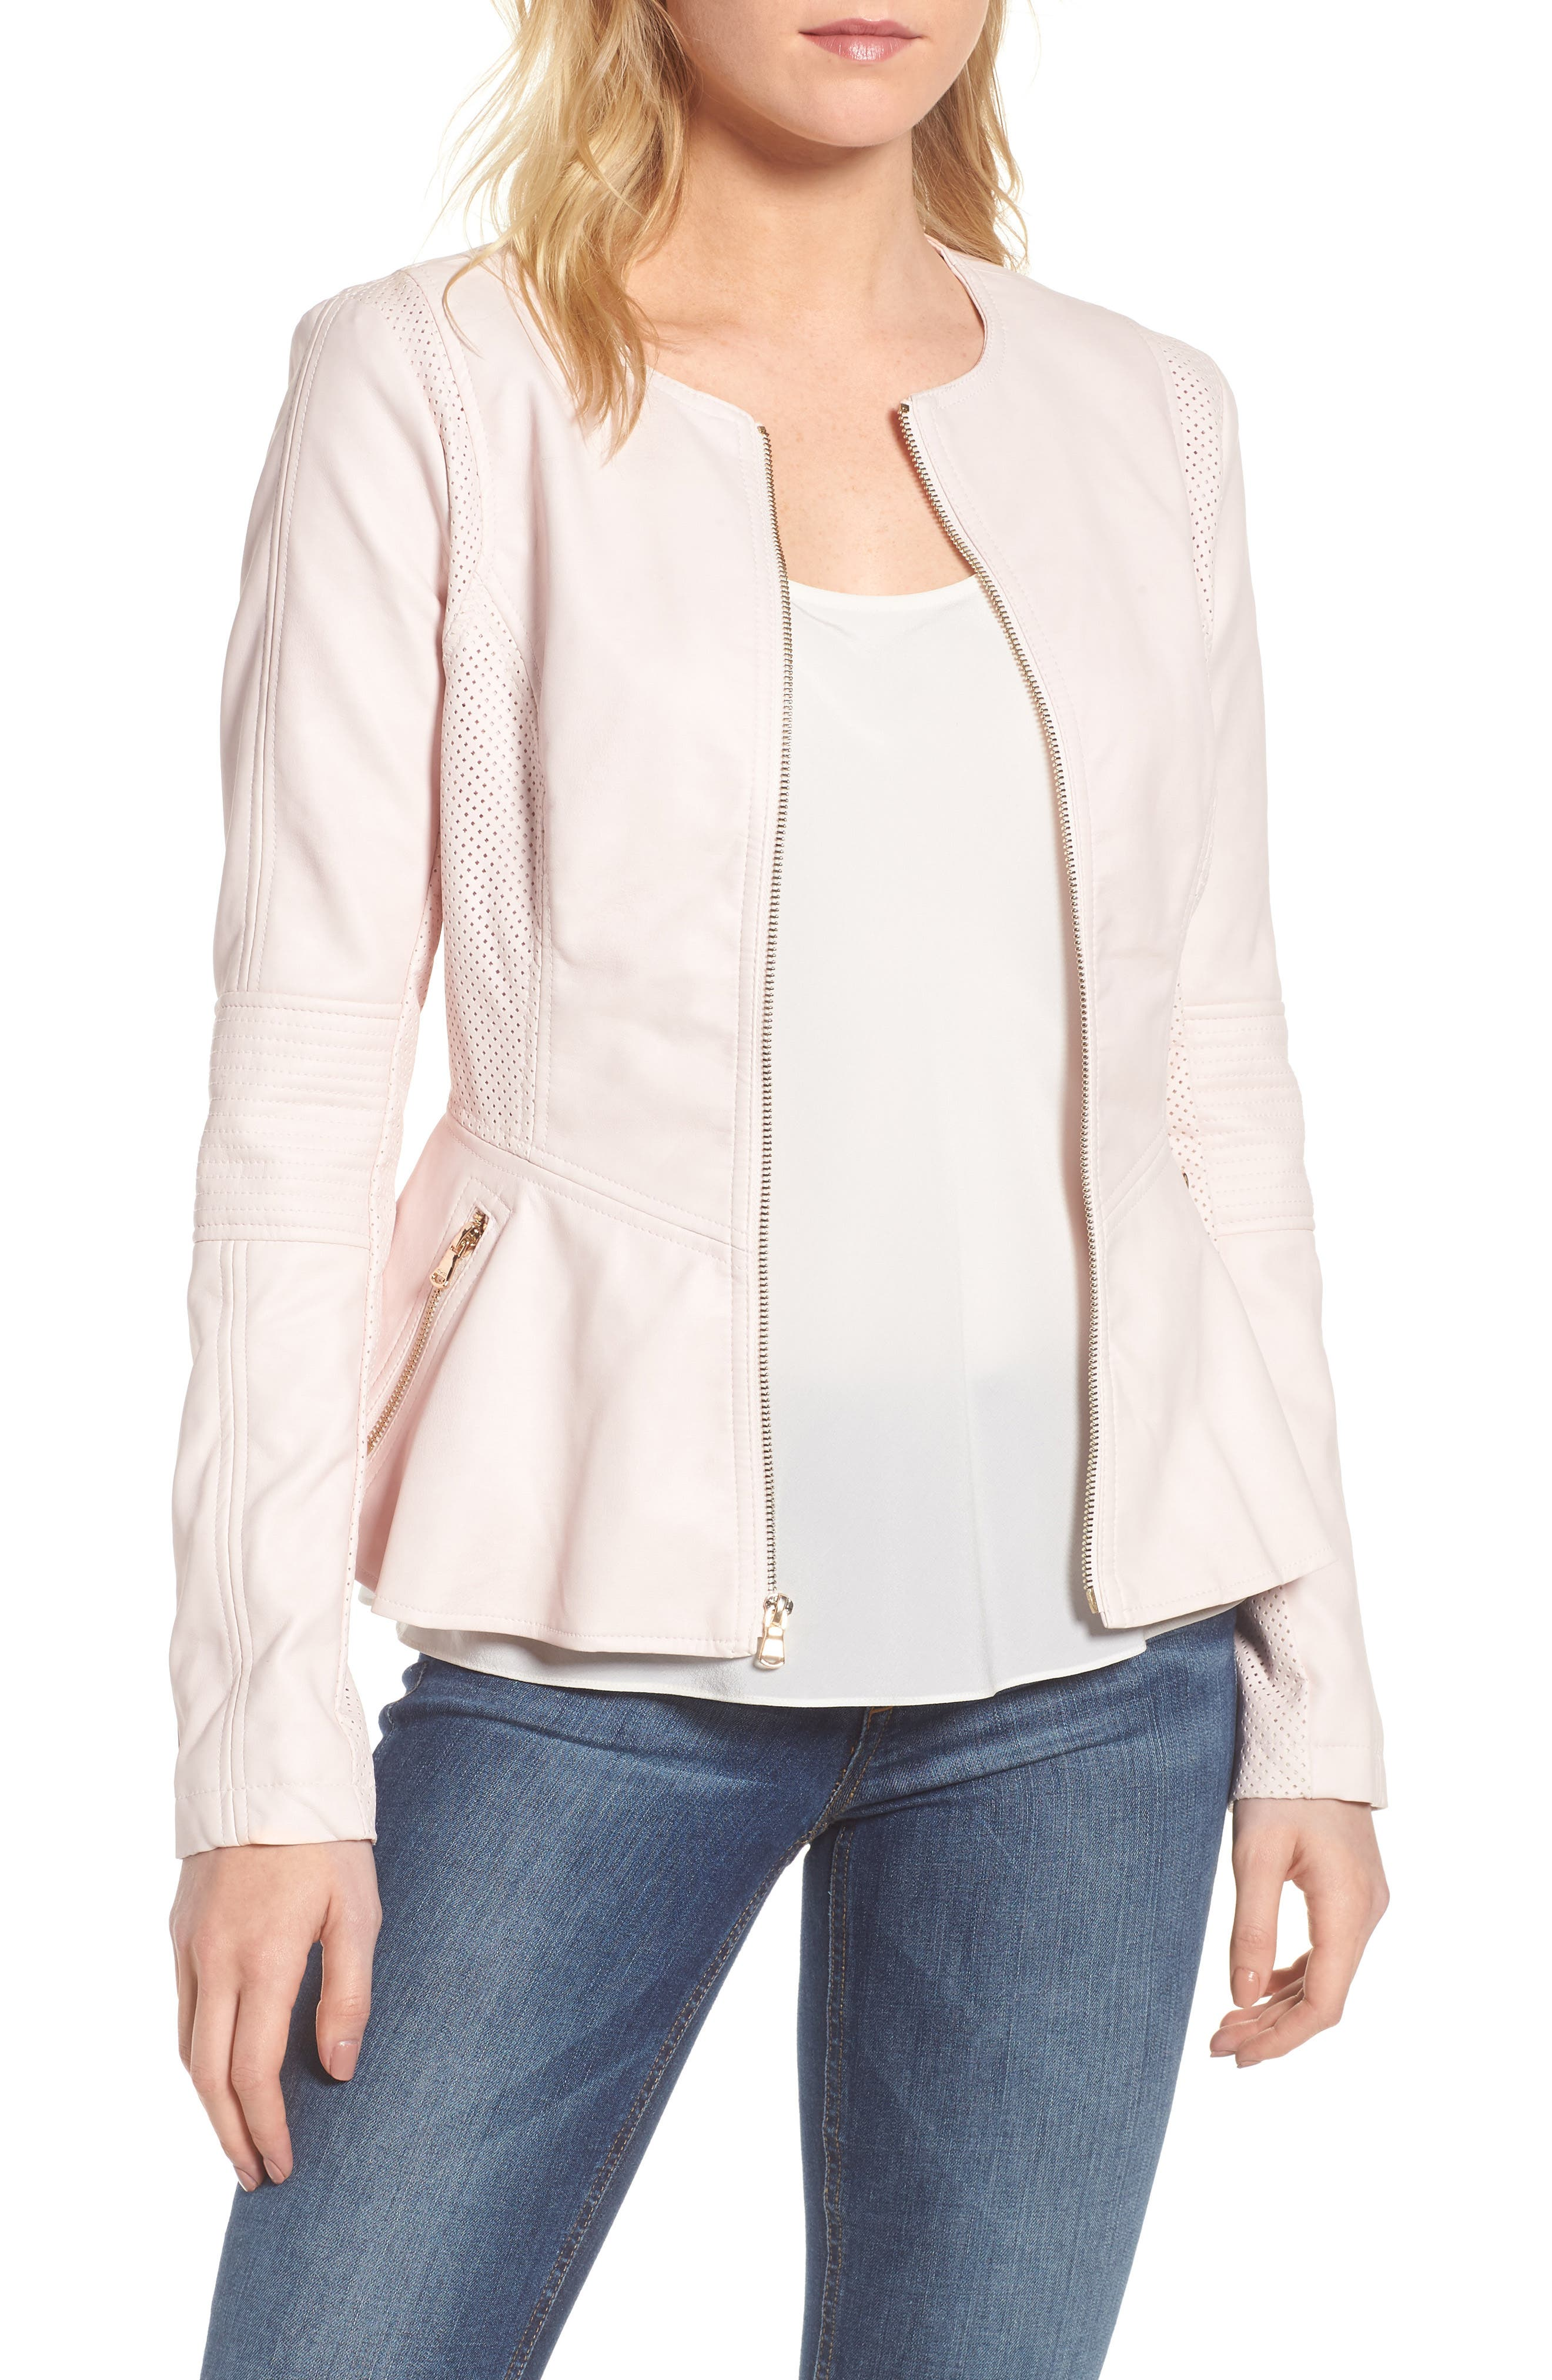 Alternate Image 1 Selected - GUESS Perforated Peplum Hem Faux Leather Jacket